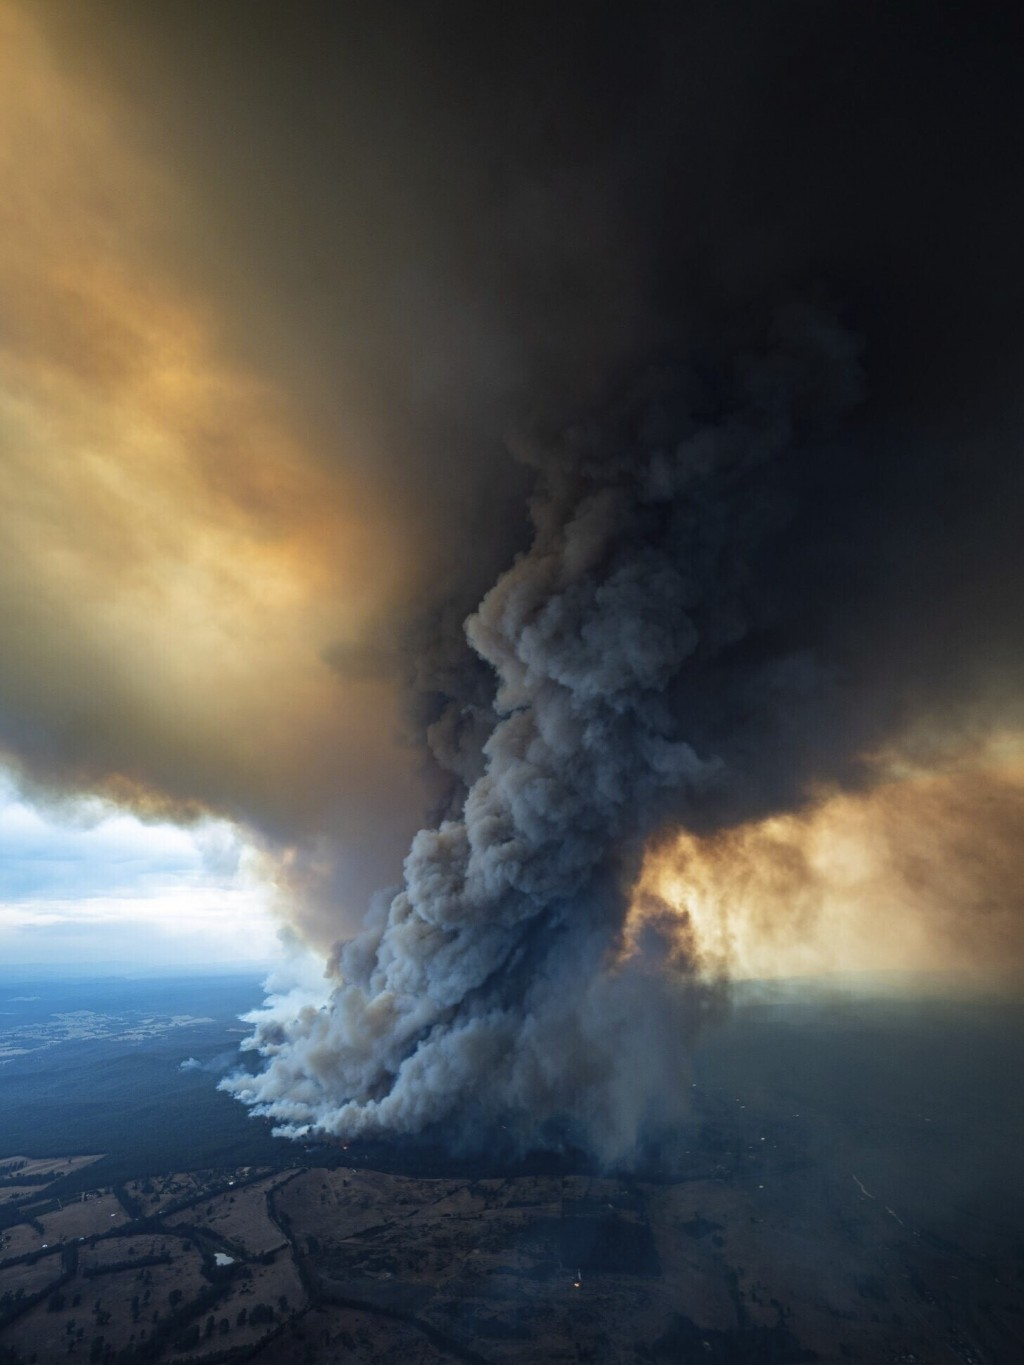 In this image released Thursday, Jan. 2, 2020, from the Department of Environment, Land, Water and Planning in Gippsland, Australia, a massive smoke r...